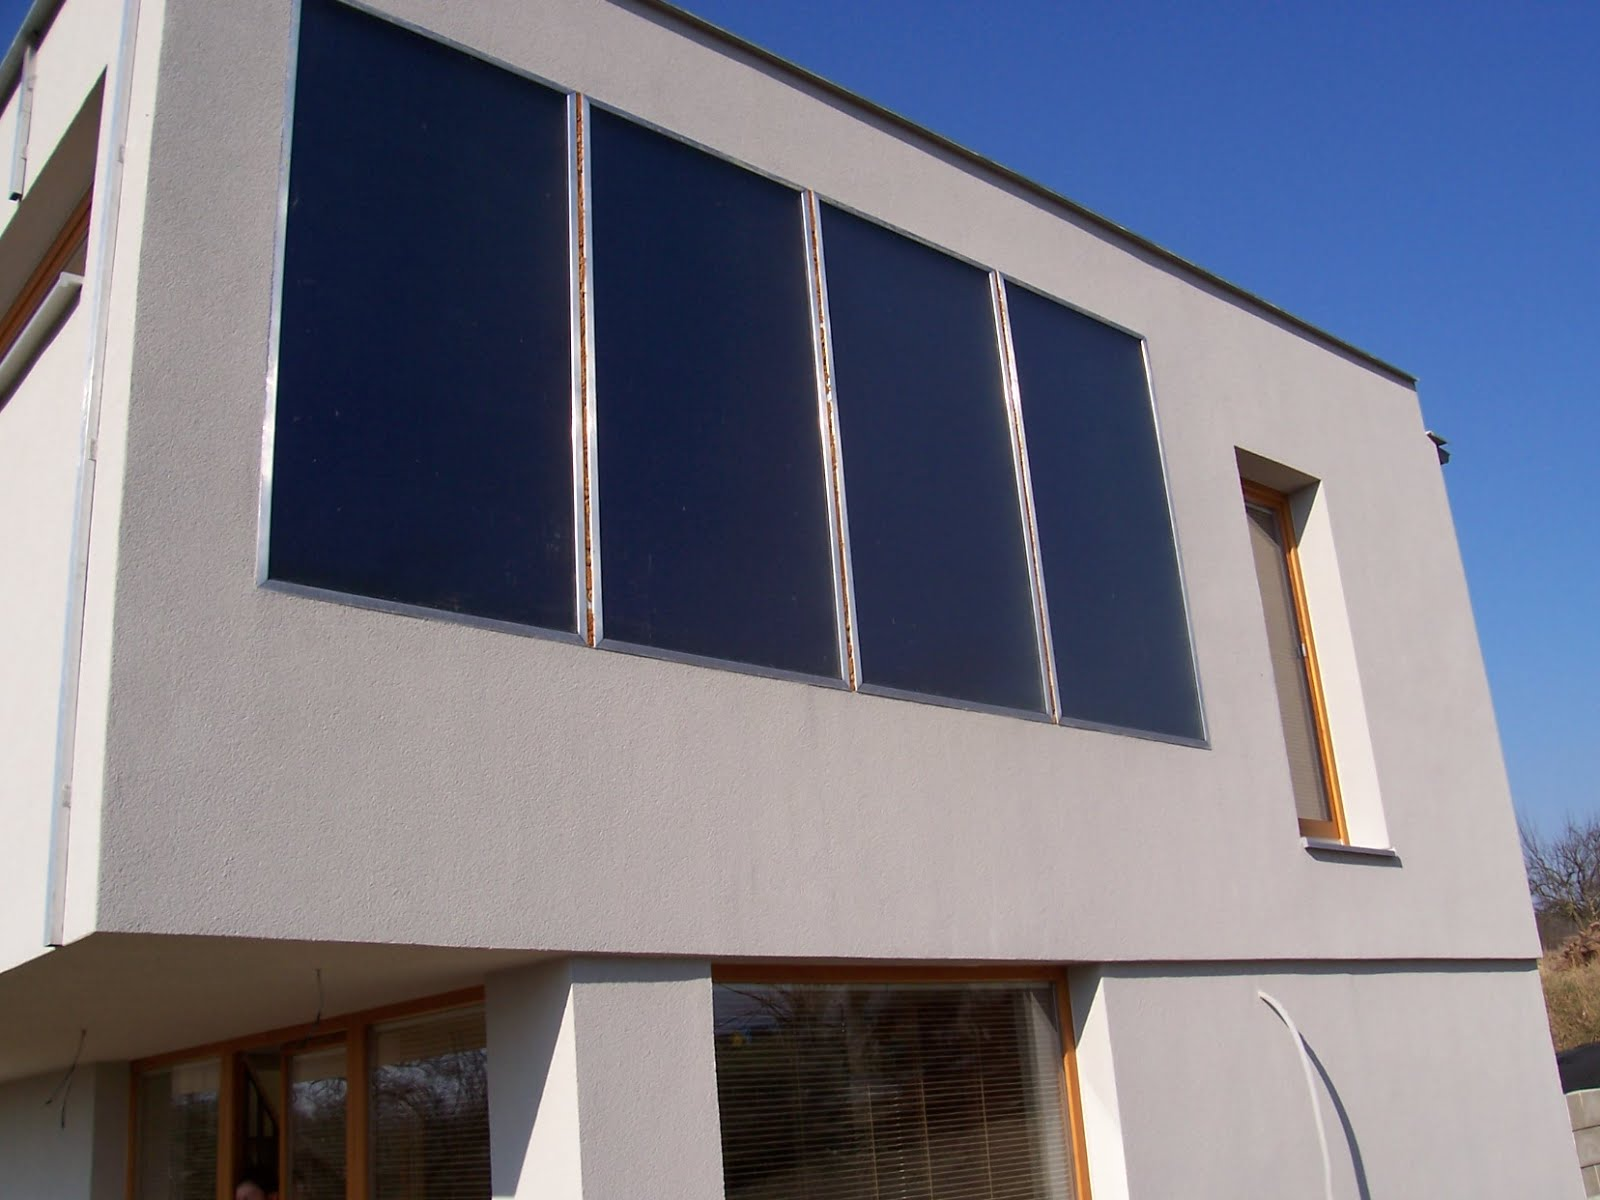 An example of a vertically mounted solar-panel system.